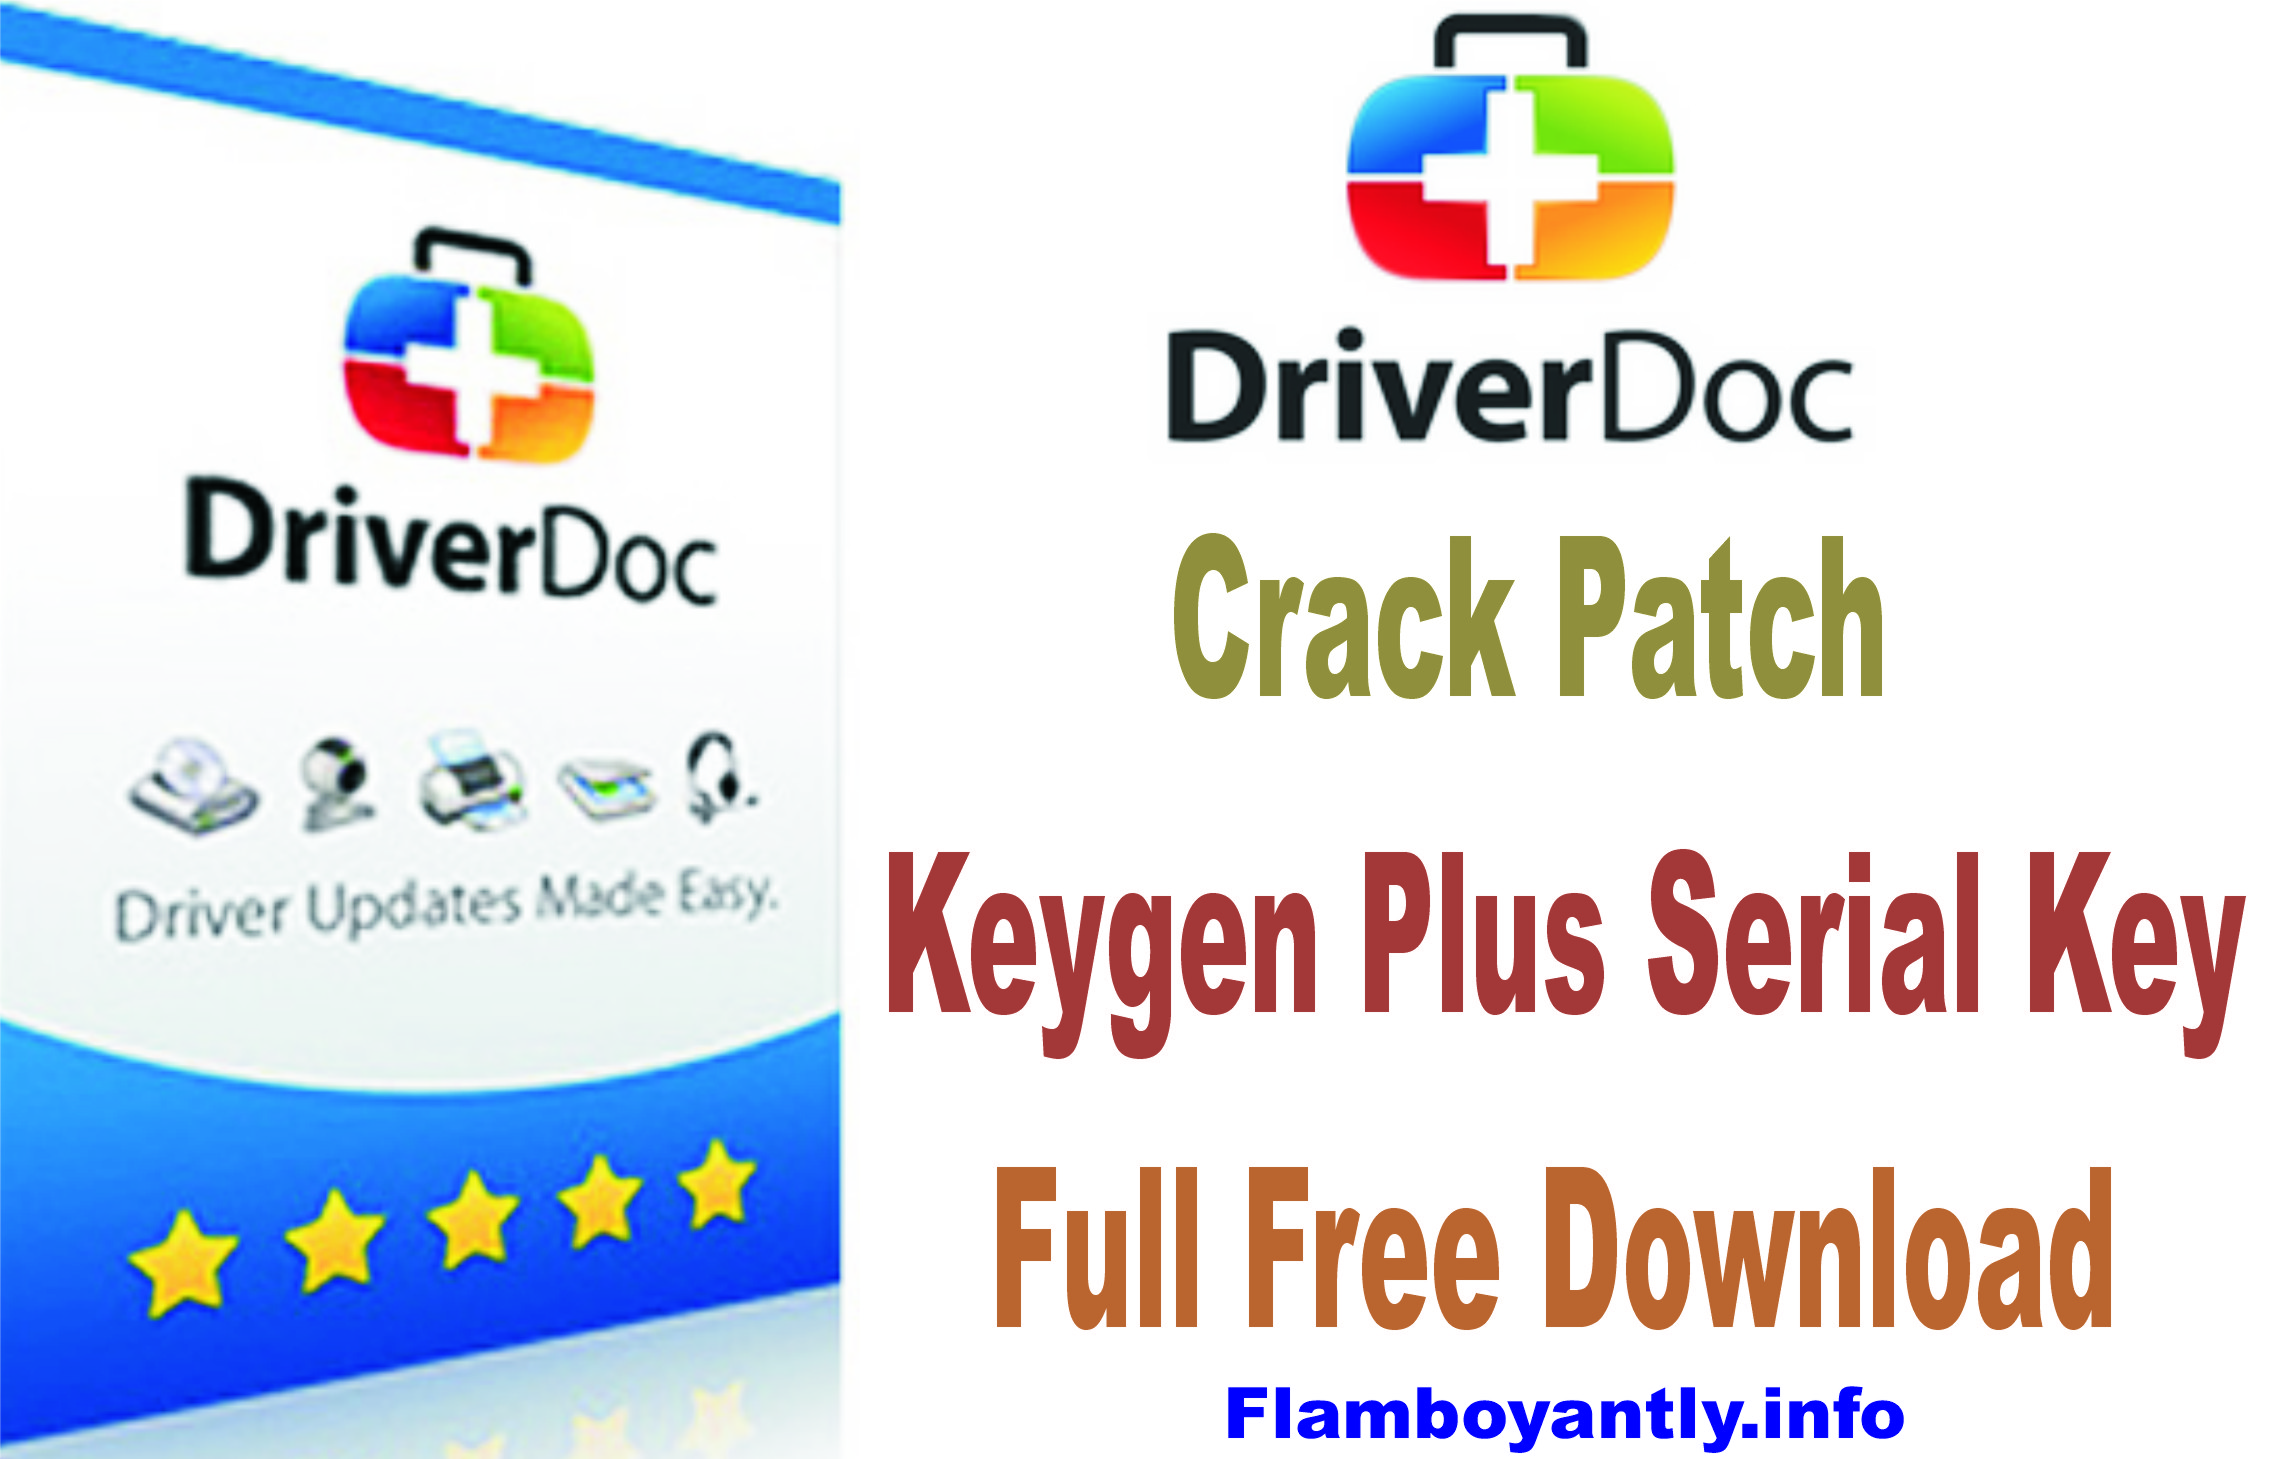 DriverDoc Crack Patch Keygen Plus Serial Key Full Free Download